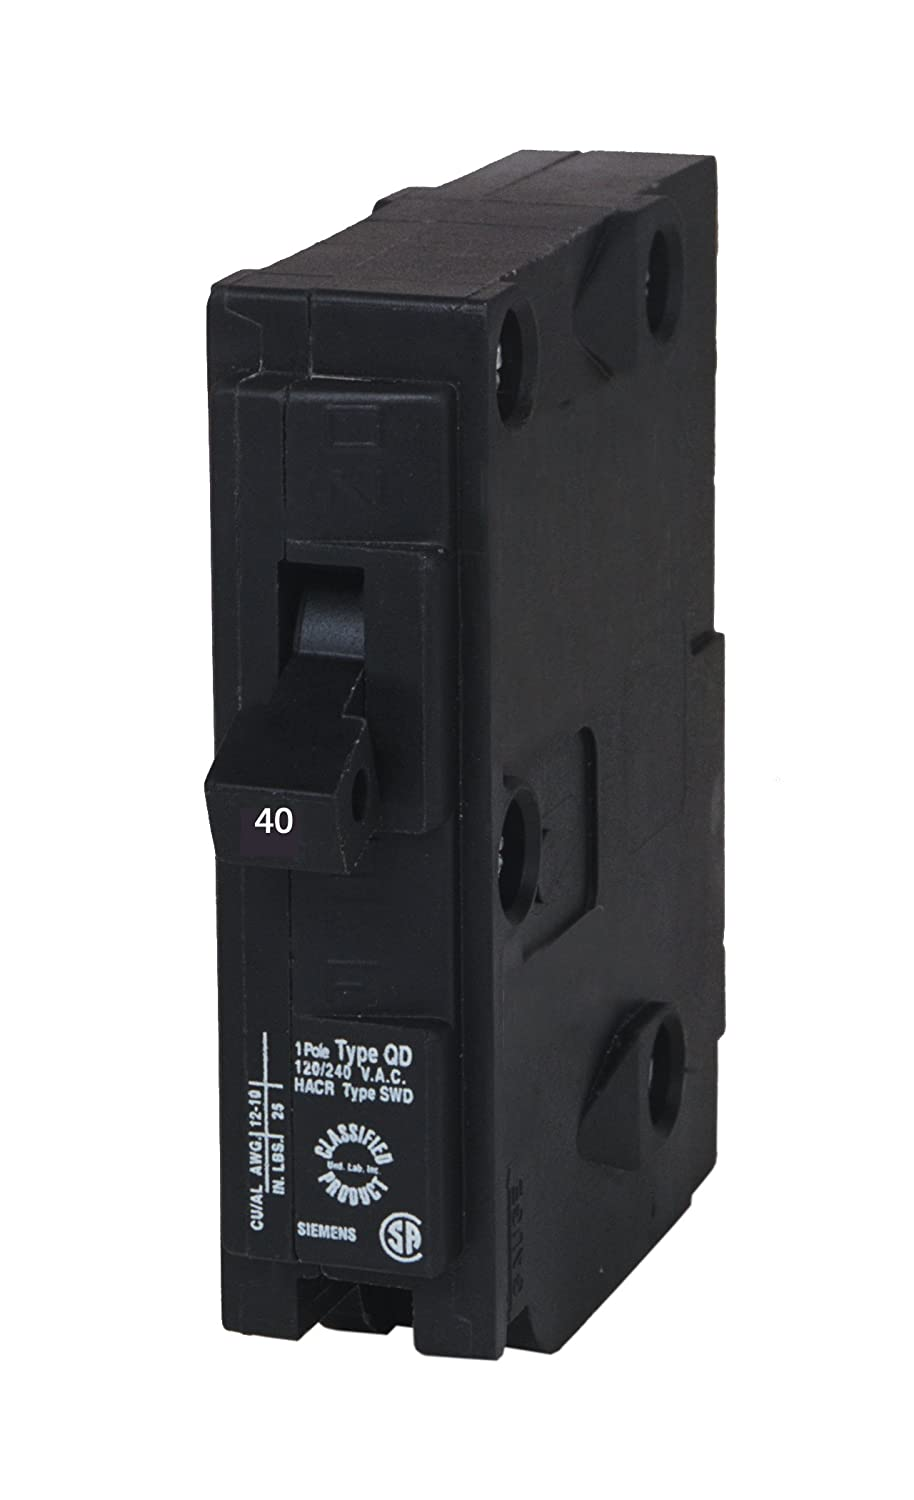 Comfortable Excalibur Remote Start Installation Thin Dimarzio Push Pull Pot Square Stratocaster Hss Wiring How To Wire A Breaker Box Youthful How To Install New Breaker In Electric Panel BlackHow To Add A Circuit Breaker To Existing Box Siemens ITED120 Classified Circuit Breaker Type QD Replacement For ..